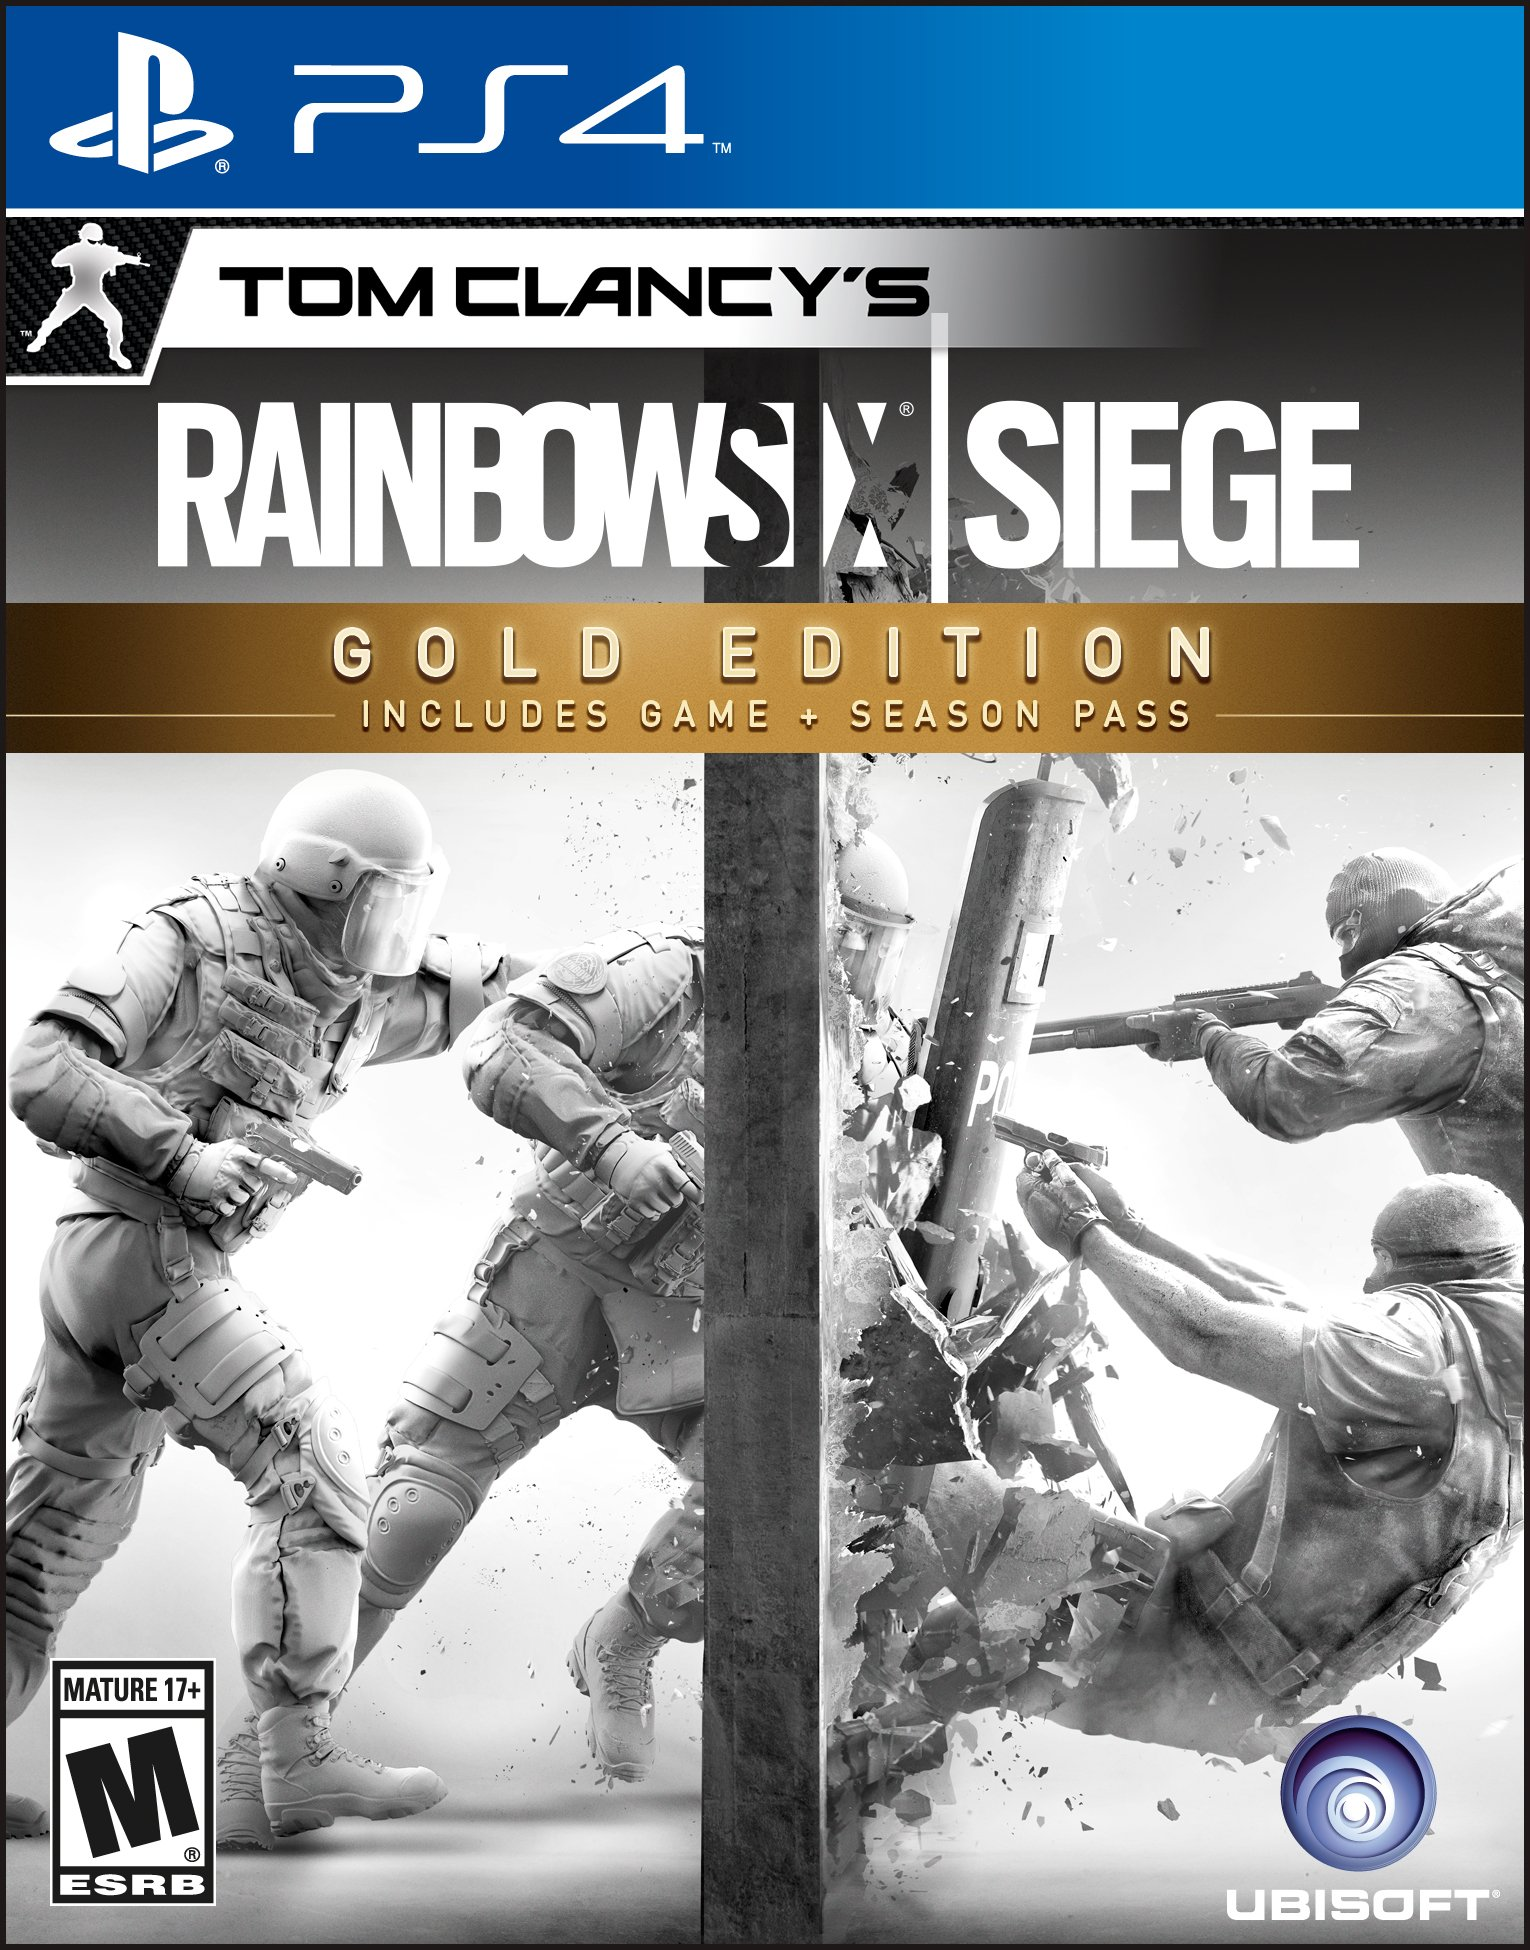 Tom Clancy Games For Ps4 : Tom clancy s rainbow six siege gold edition release date